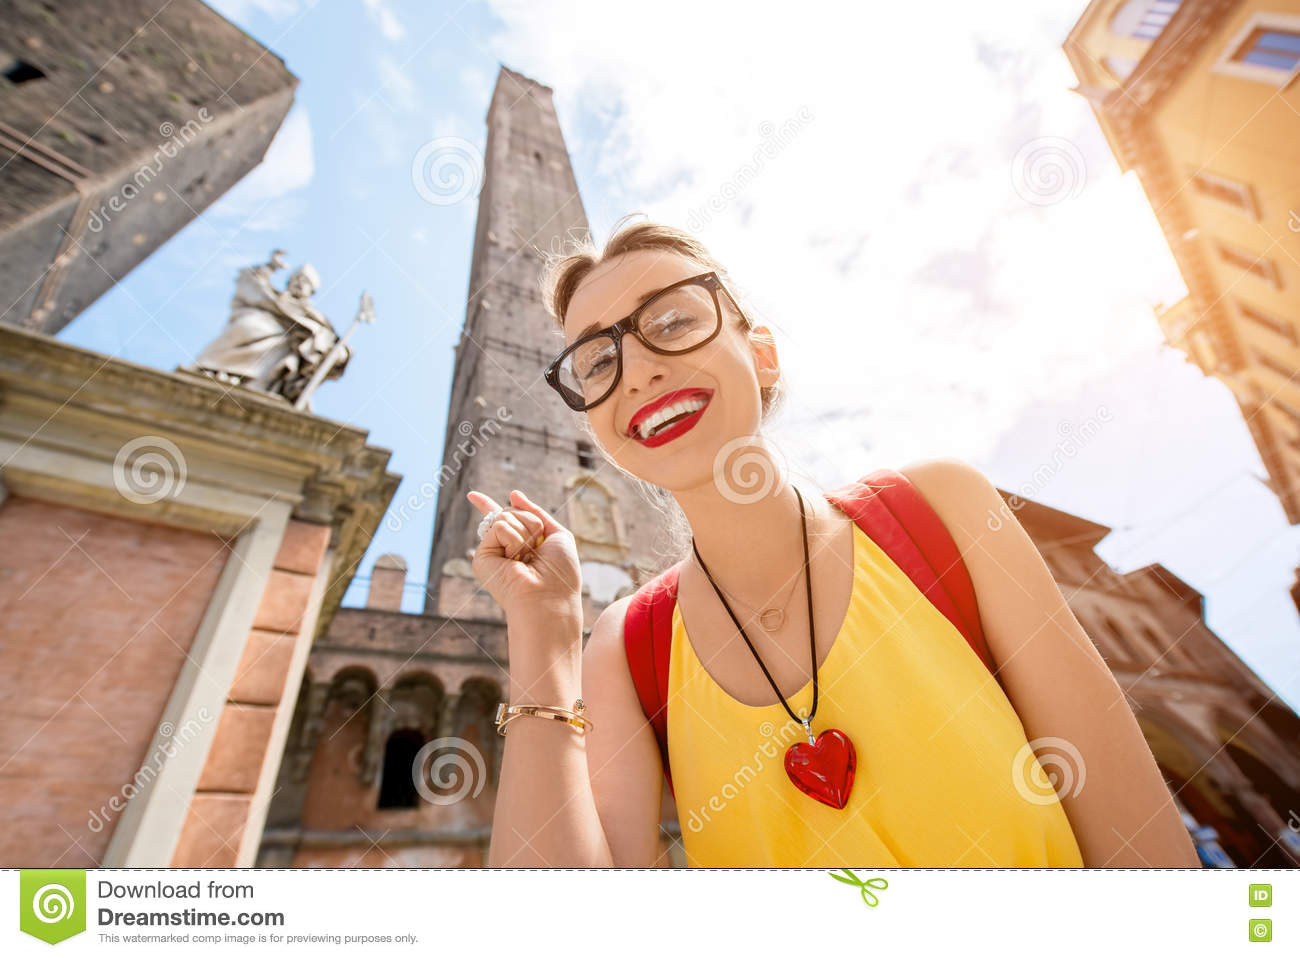 Woman traveling in Bologna city